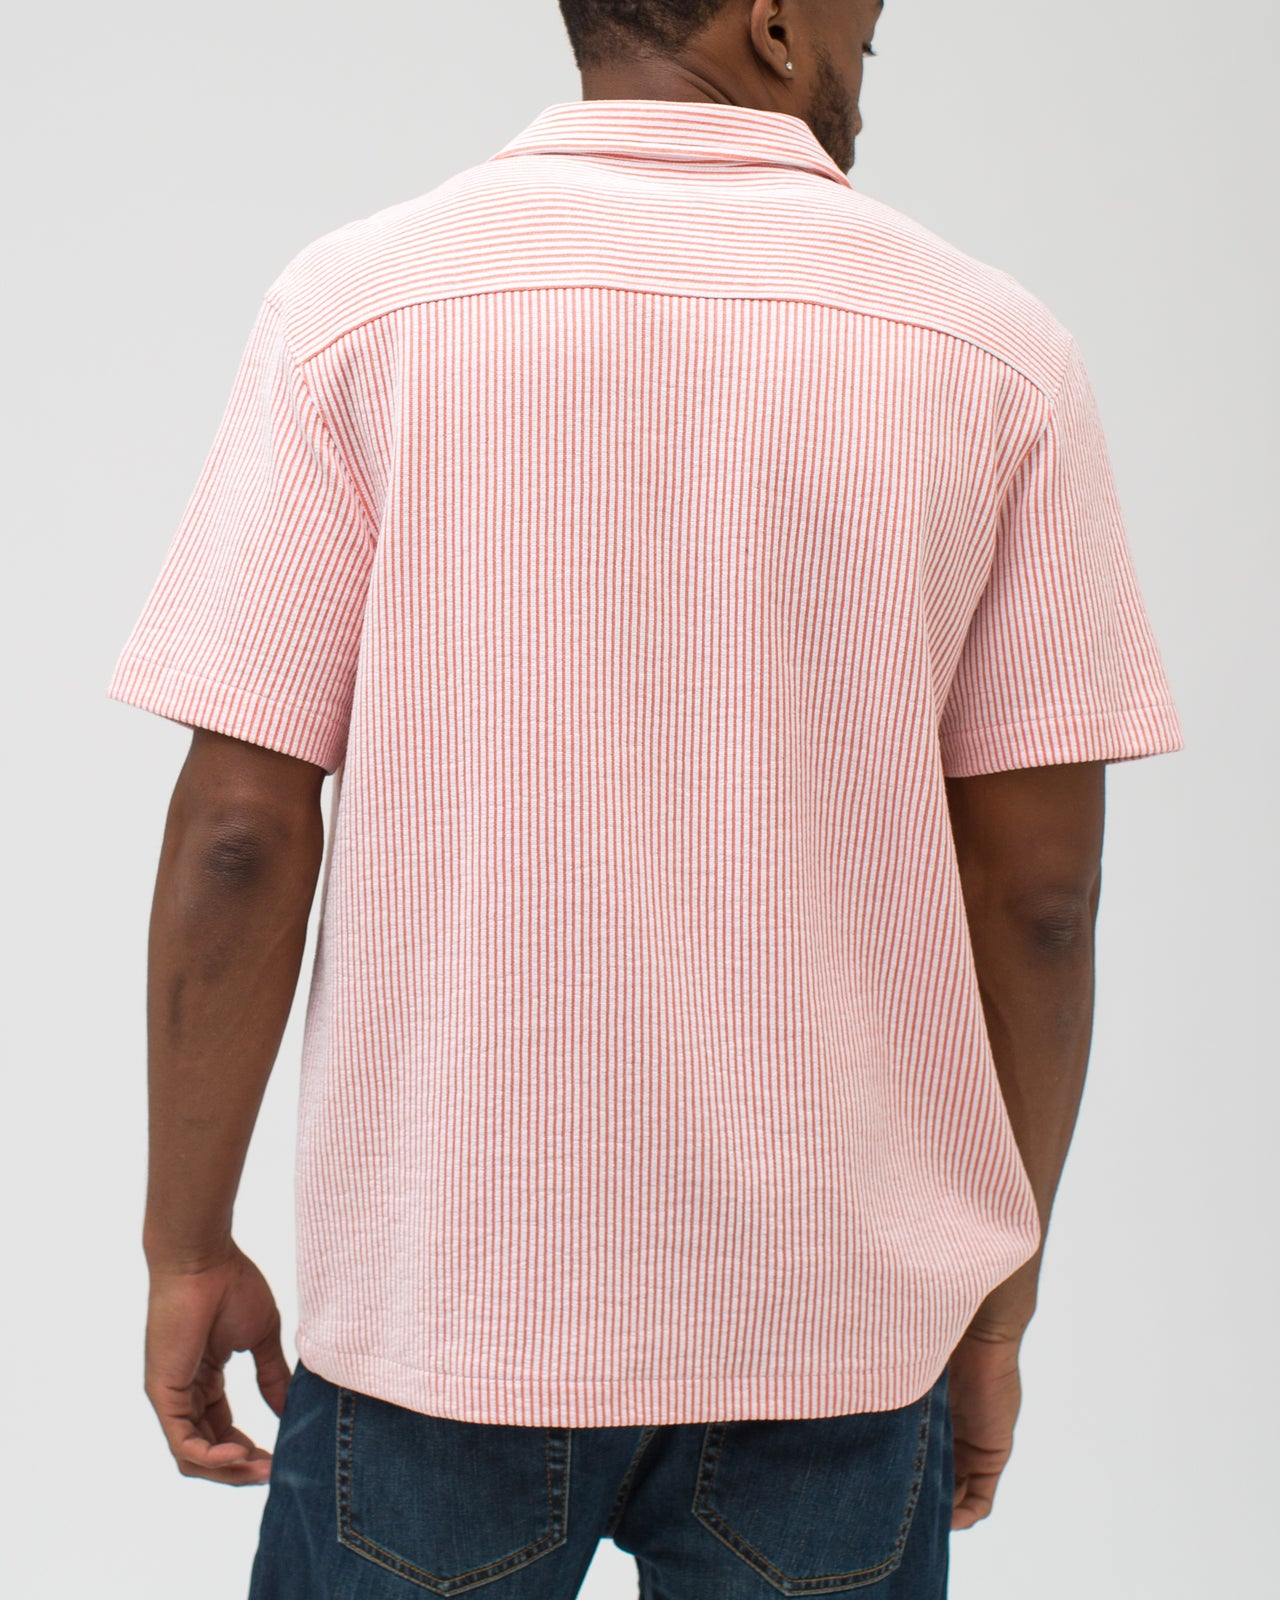 Jacquard Stripe Camp Shirt - Color: Crabapple | Red